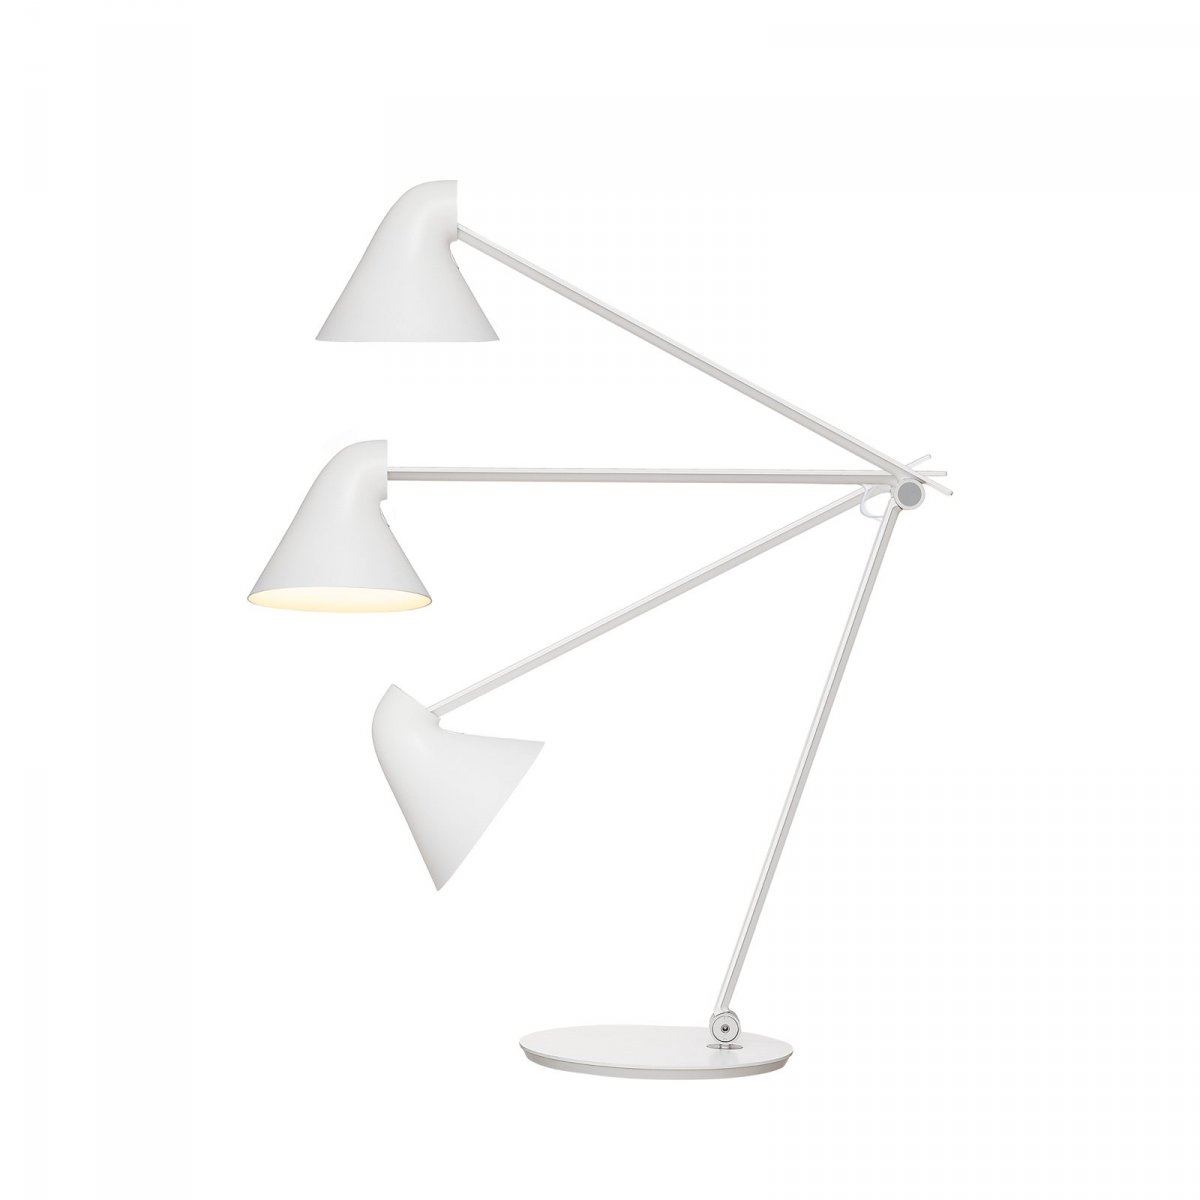 NJP Table desk lamp, white.